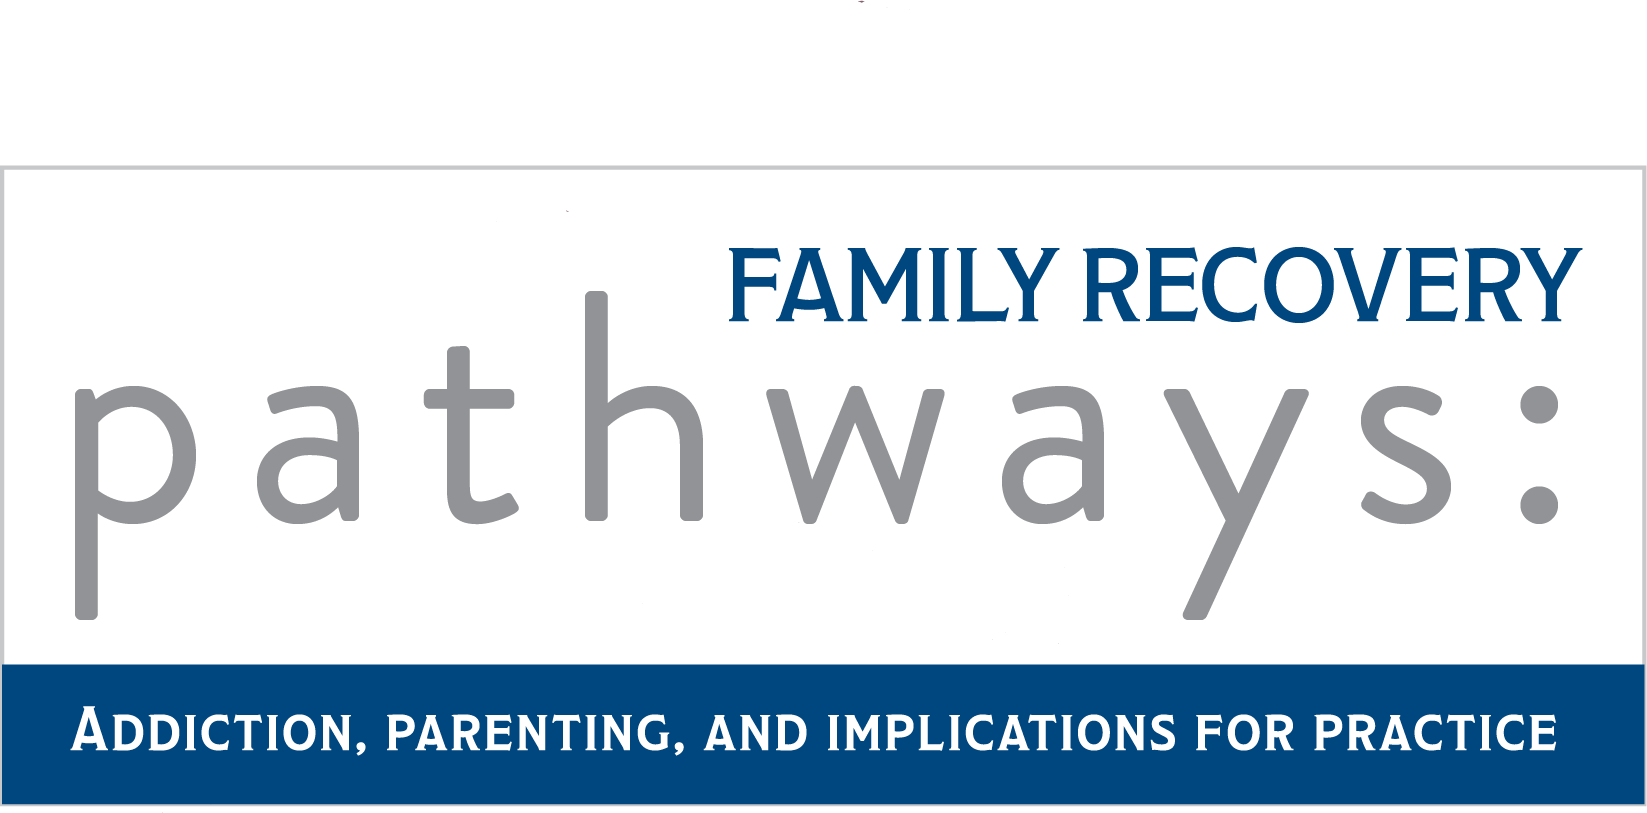 Family Recovery Pathways Conference, May 6-8, 2019